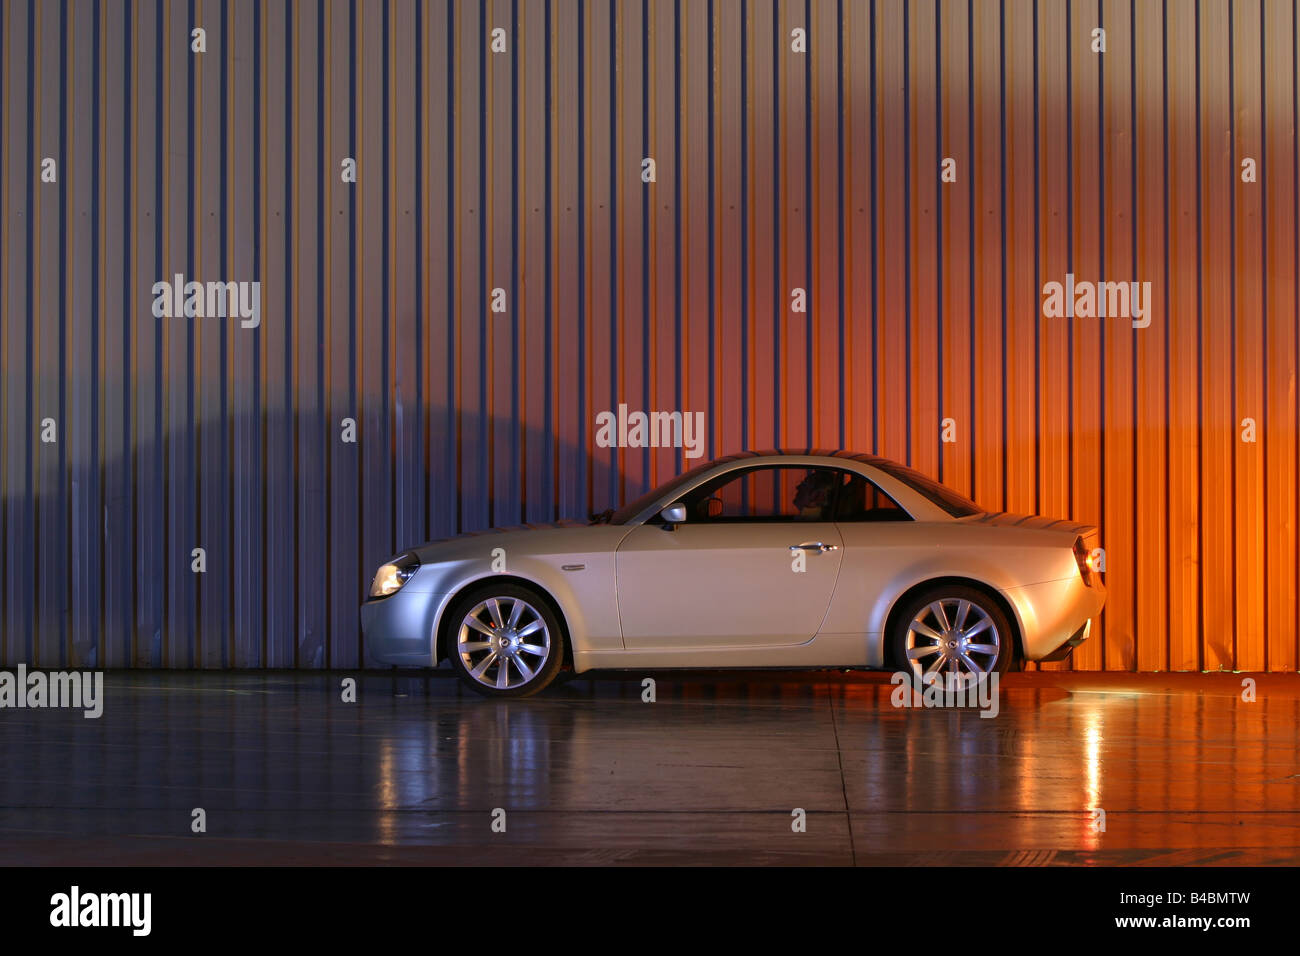 Car, Lancia Fulvia, Study, Draft and design study, model year 2003, silver, standing, upholding, side view, Studio - Stock Image